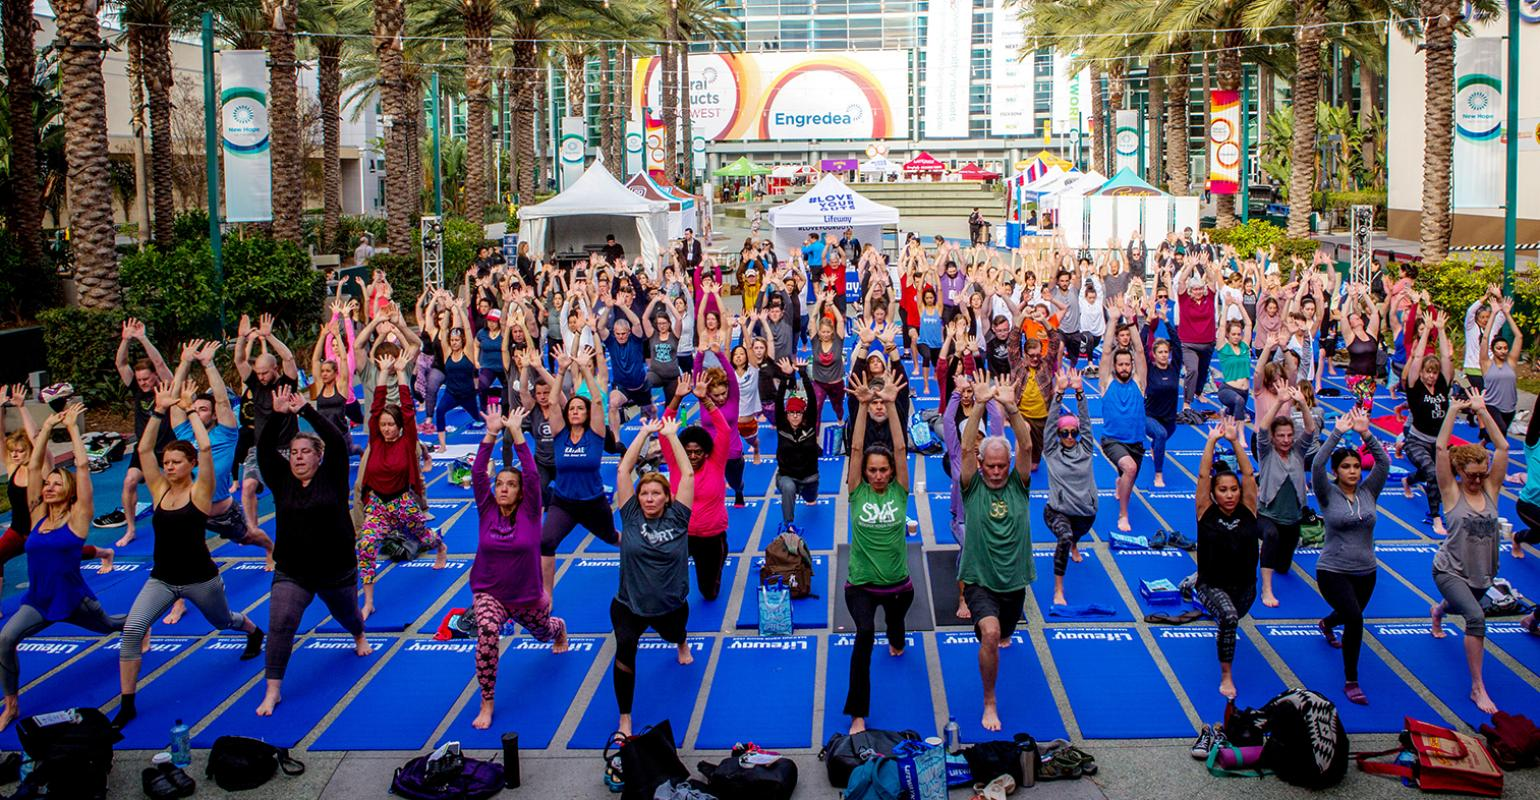 Making your way around Expo West 2019 at the Anaheim